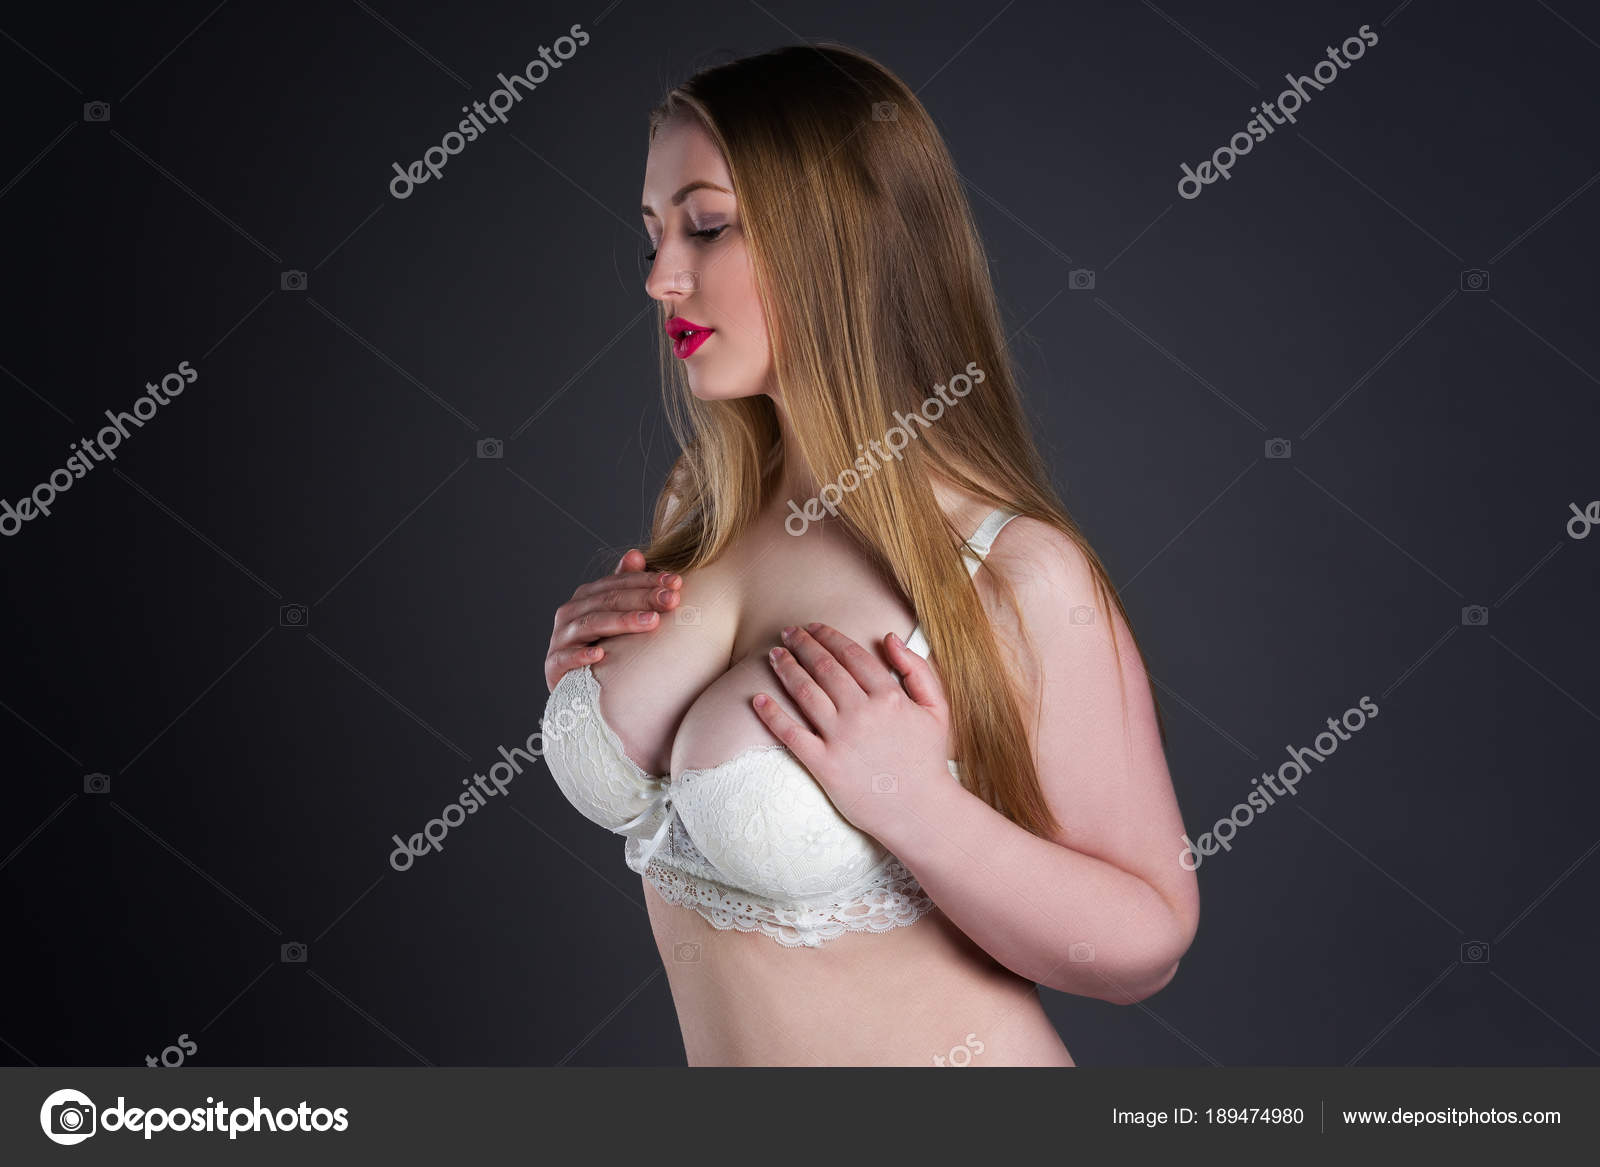 There can big blonde boob fat sexy for that